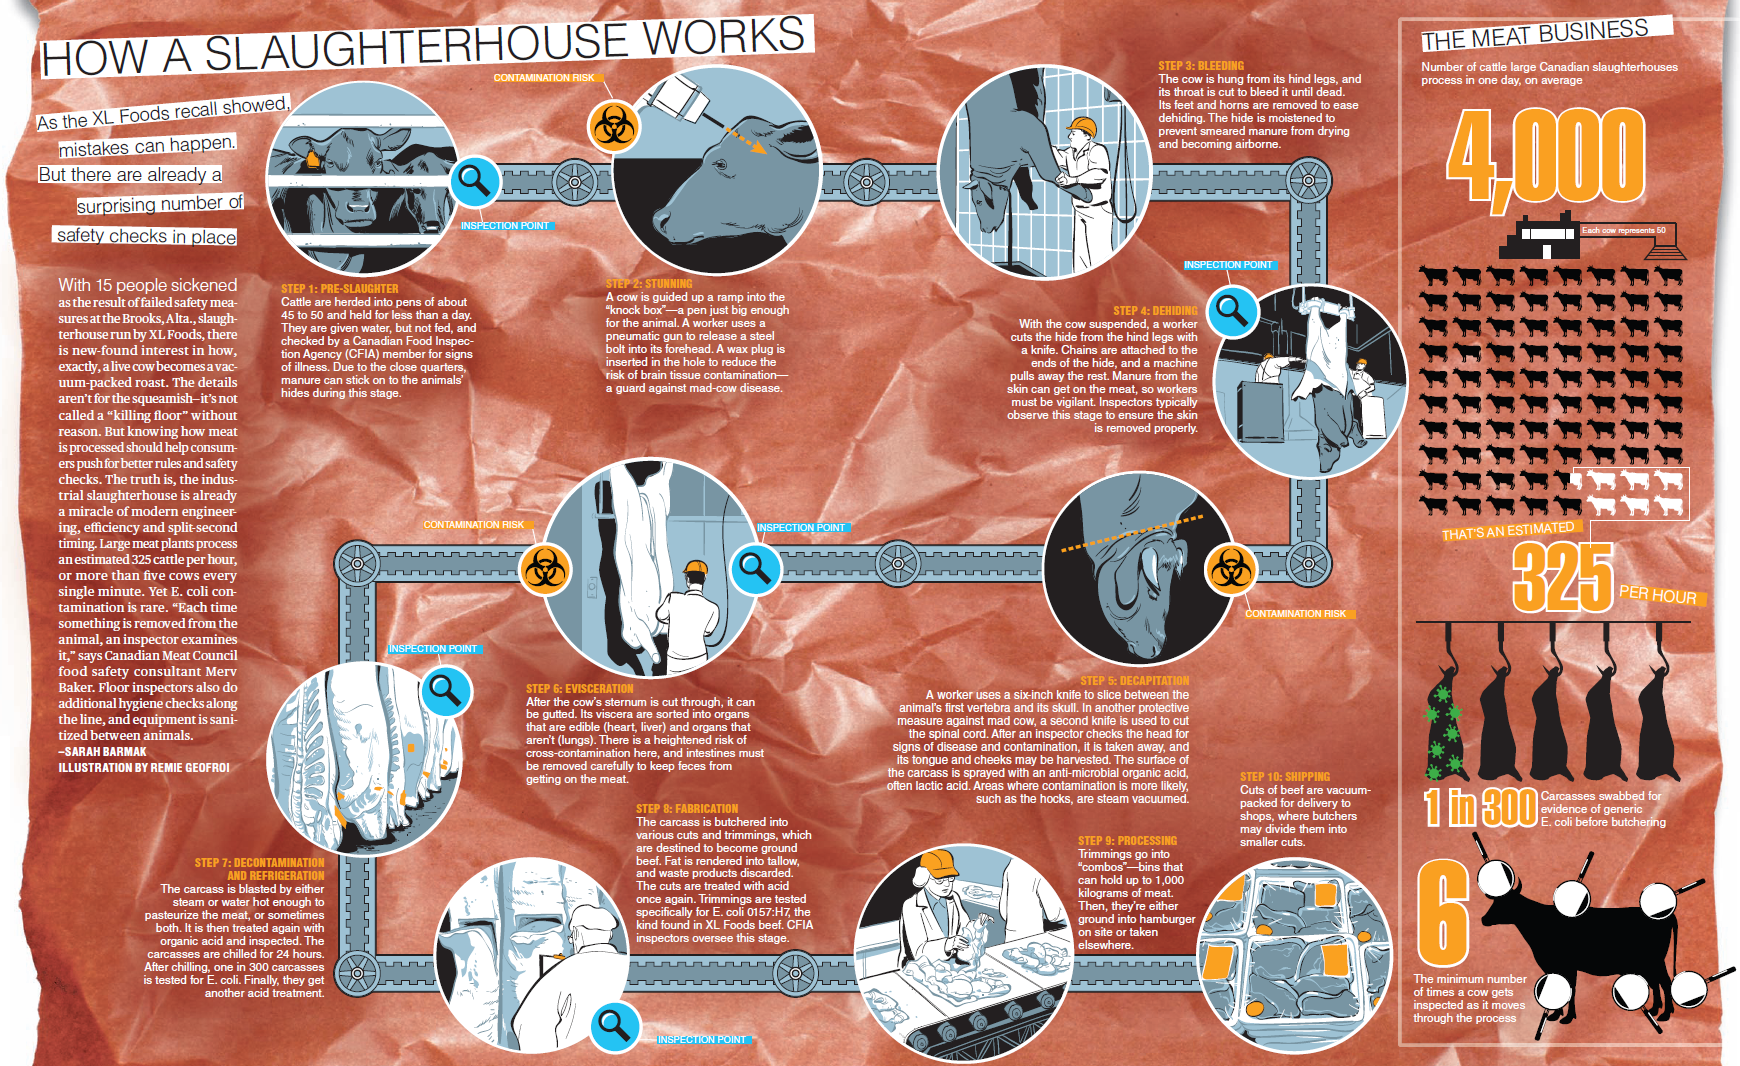 How a Slaughterhouse Works